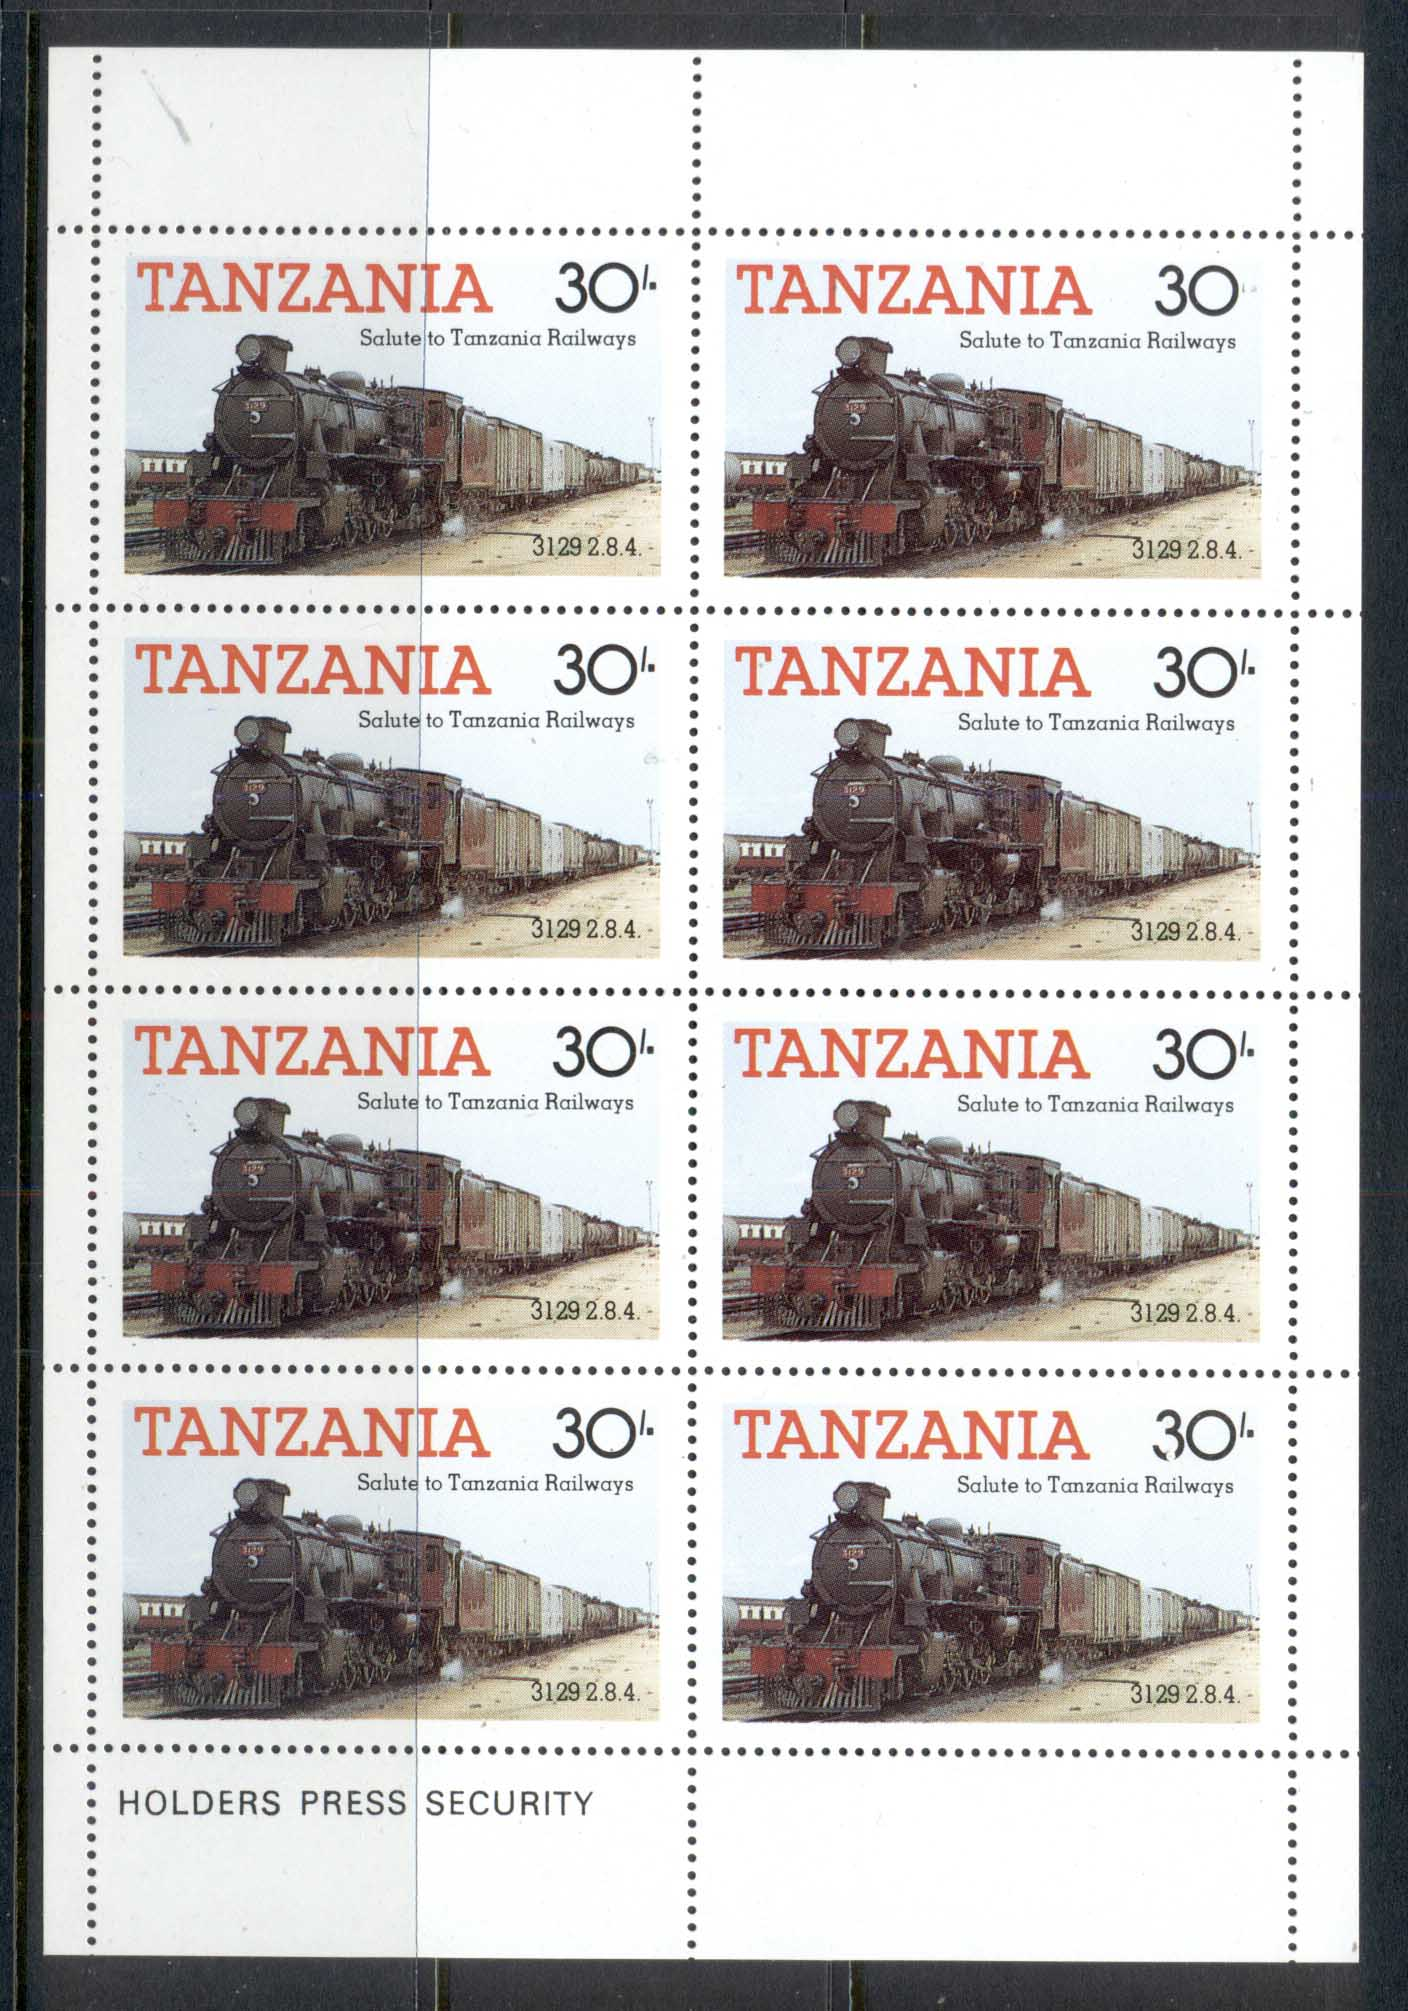 Tanzania 1985 Tanzanian Railways Locomotives 30/- sheetlet MUH